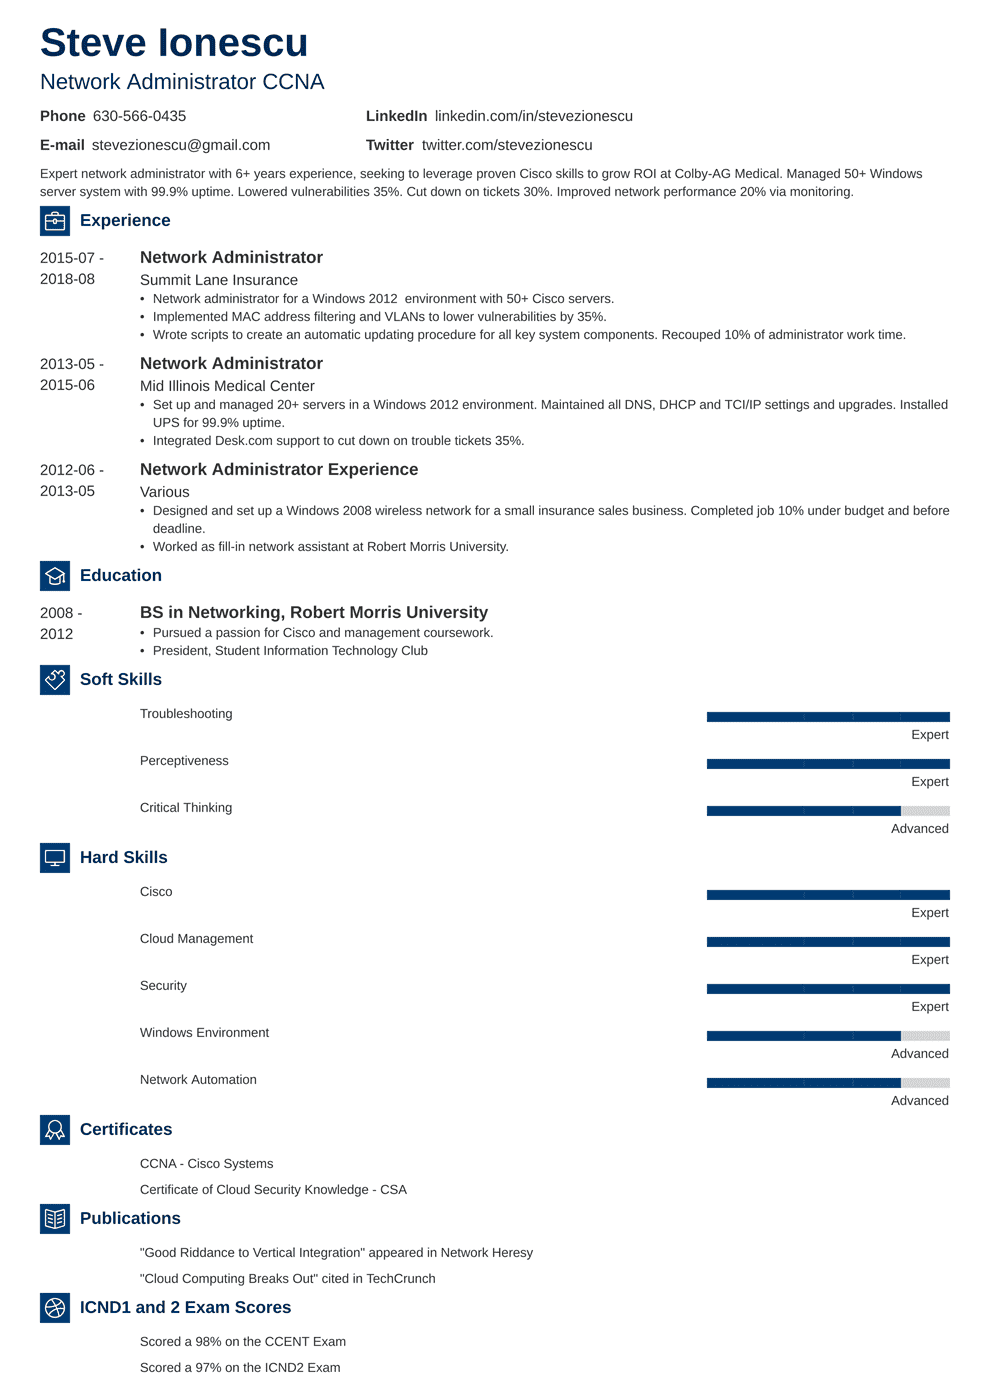 Network Administrator Resume Sample & Writing Guide [+20 ...